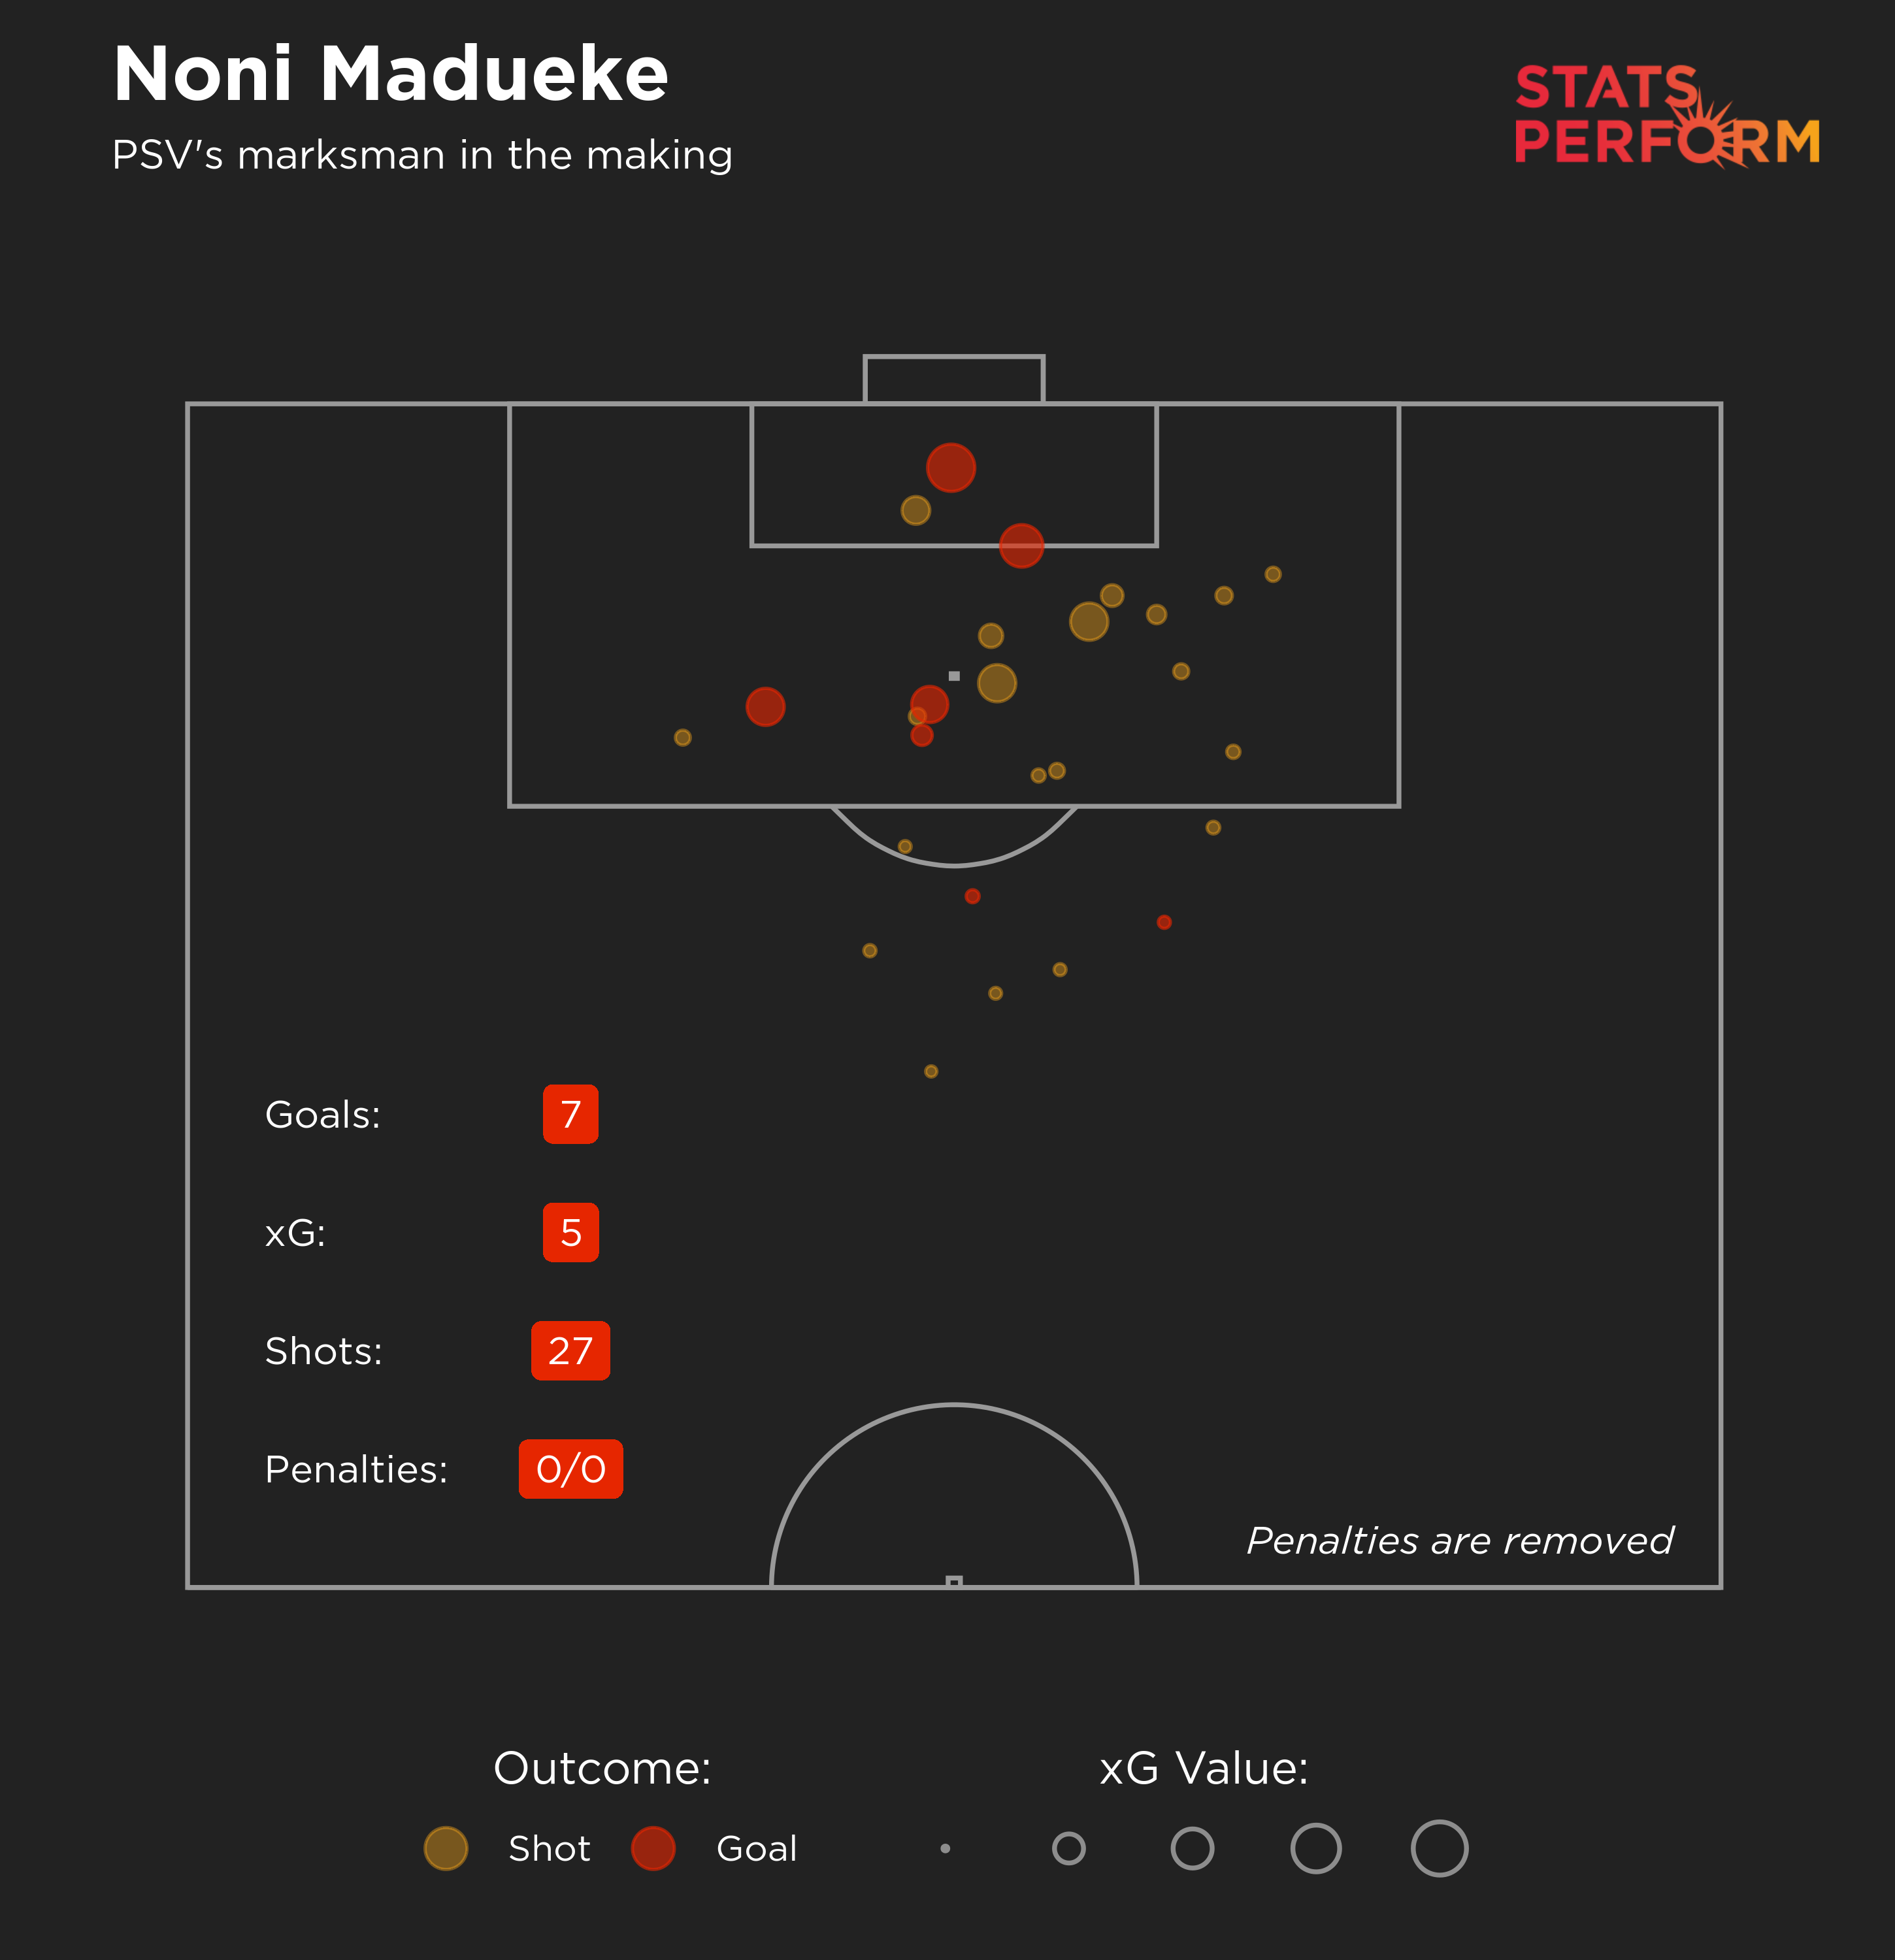 Noni Madueke expected goals